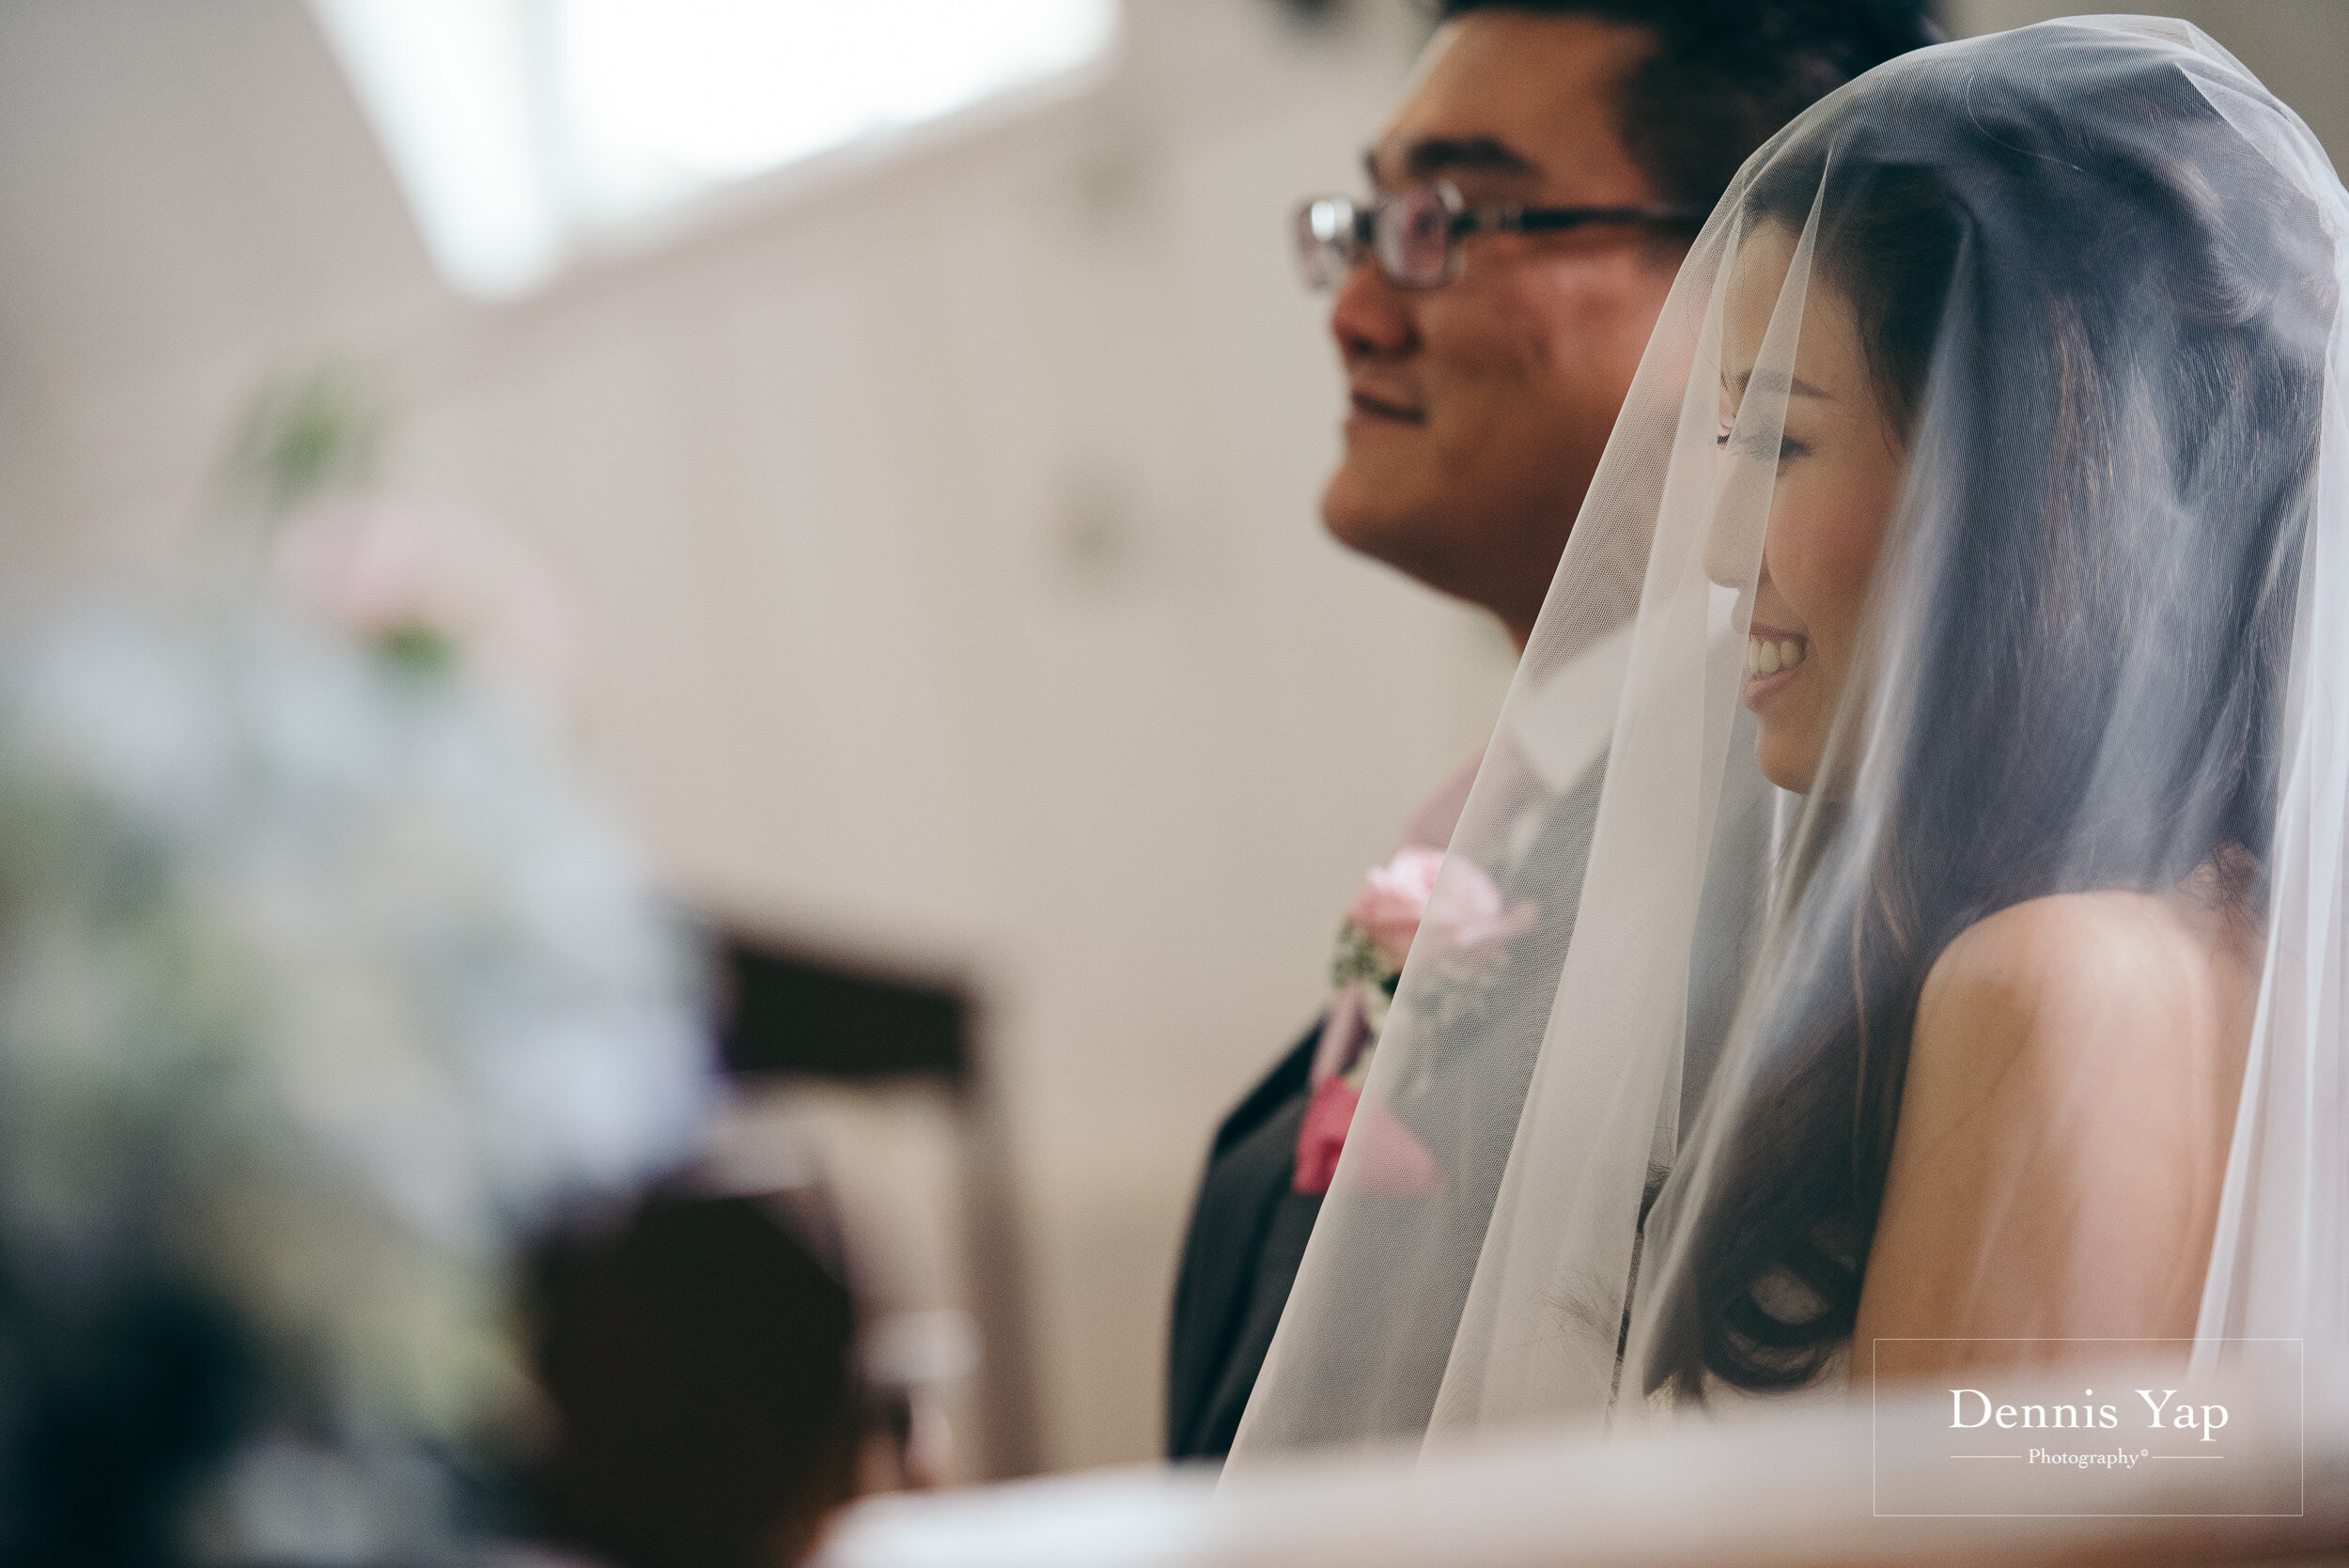 alex siowli wedding reception cameron highlands smoke house dennis yap photography malaysia traditional church wedding-119.jpg